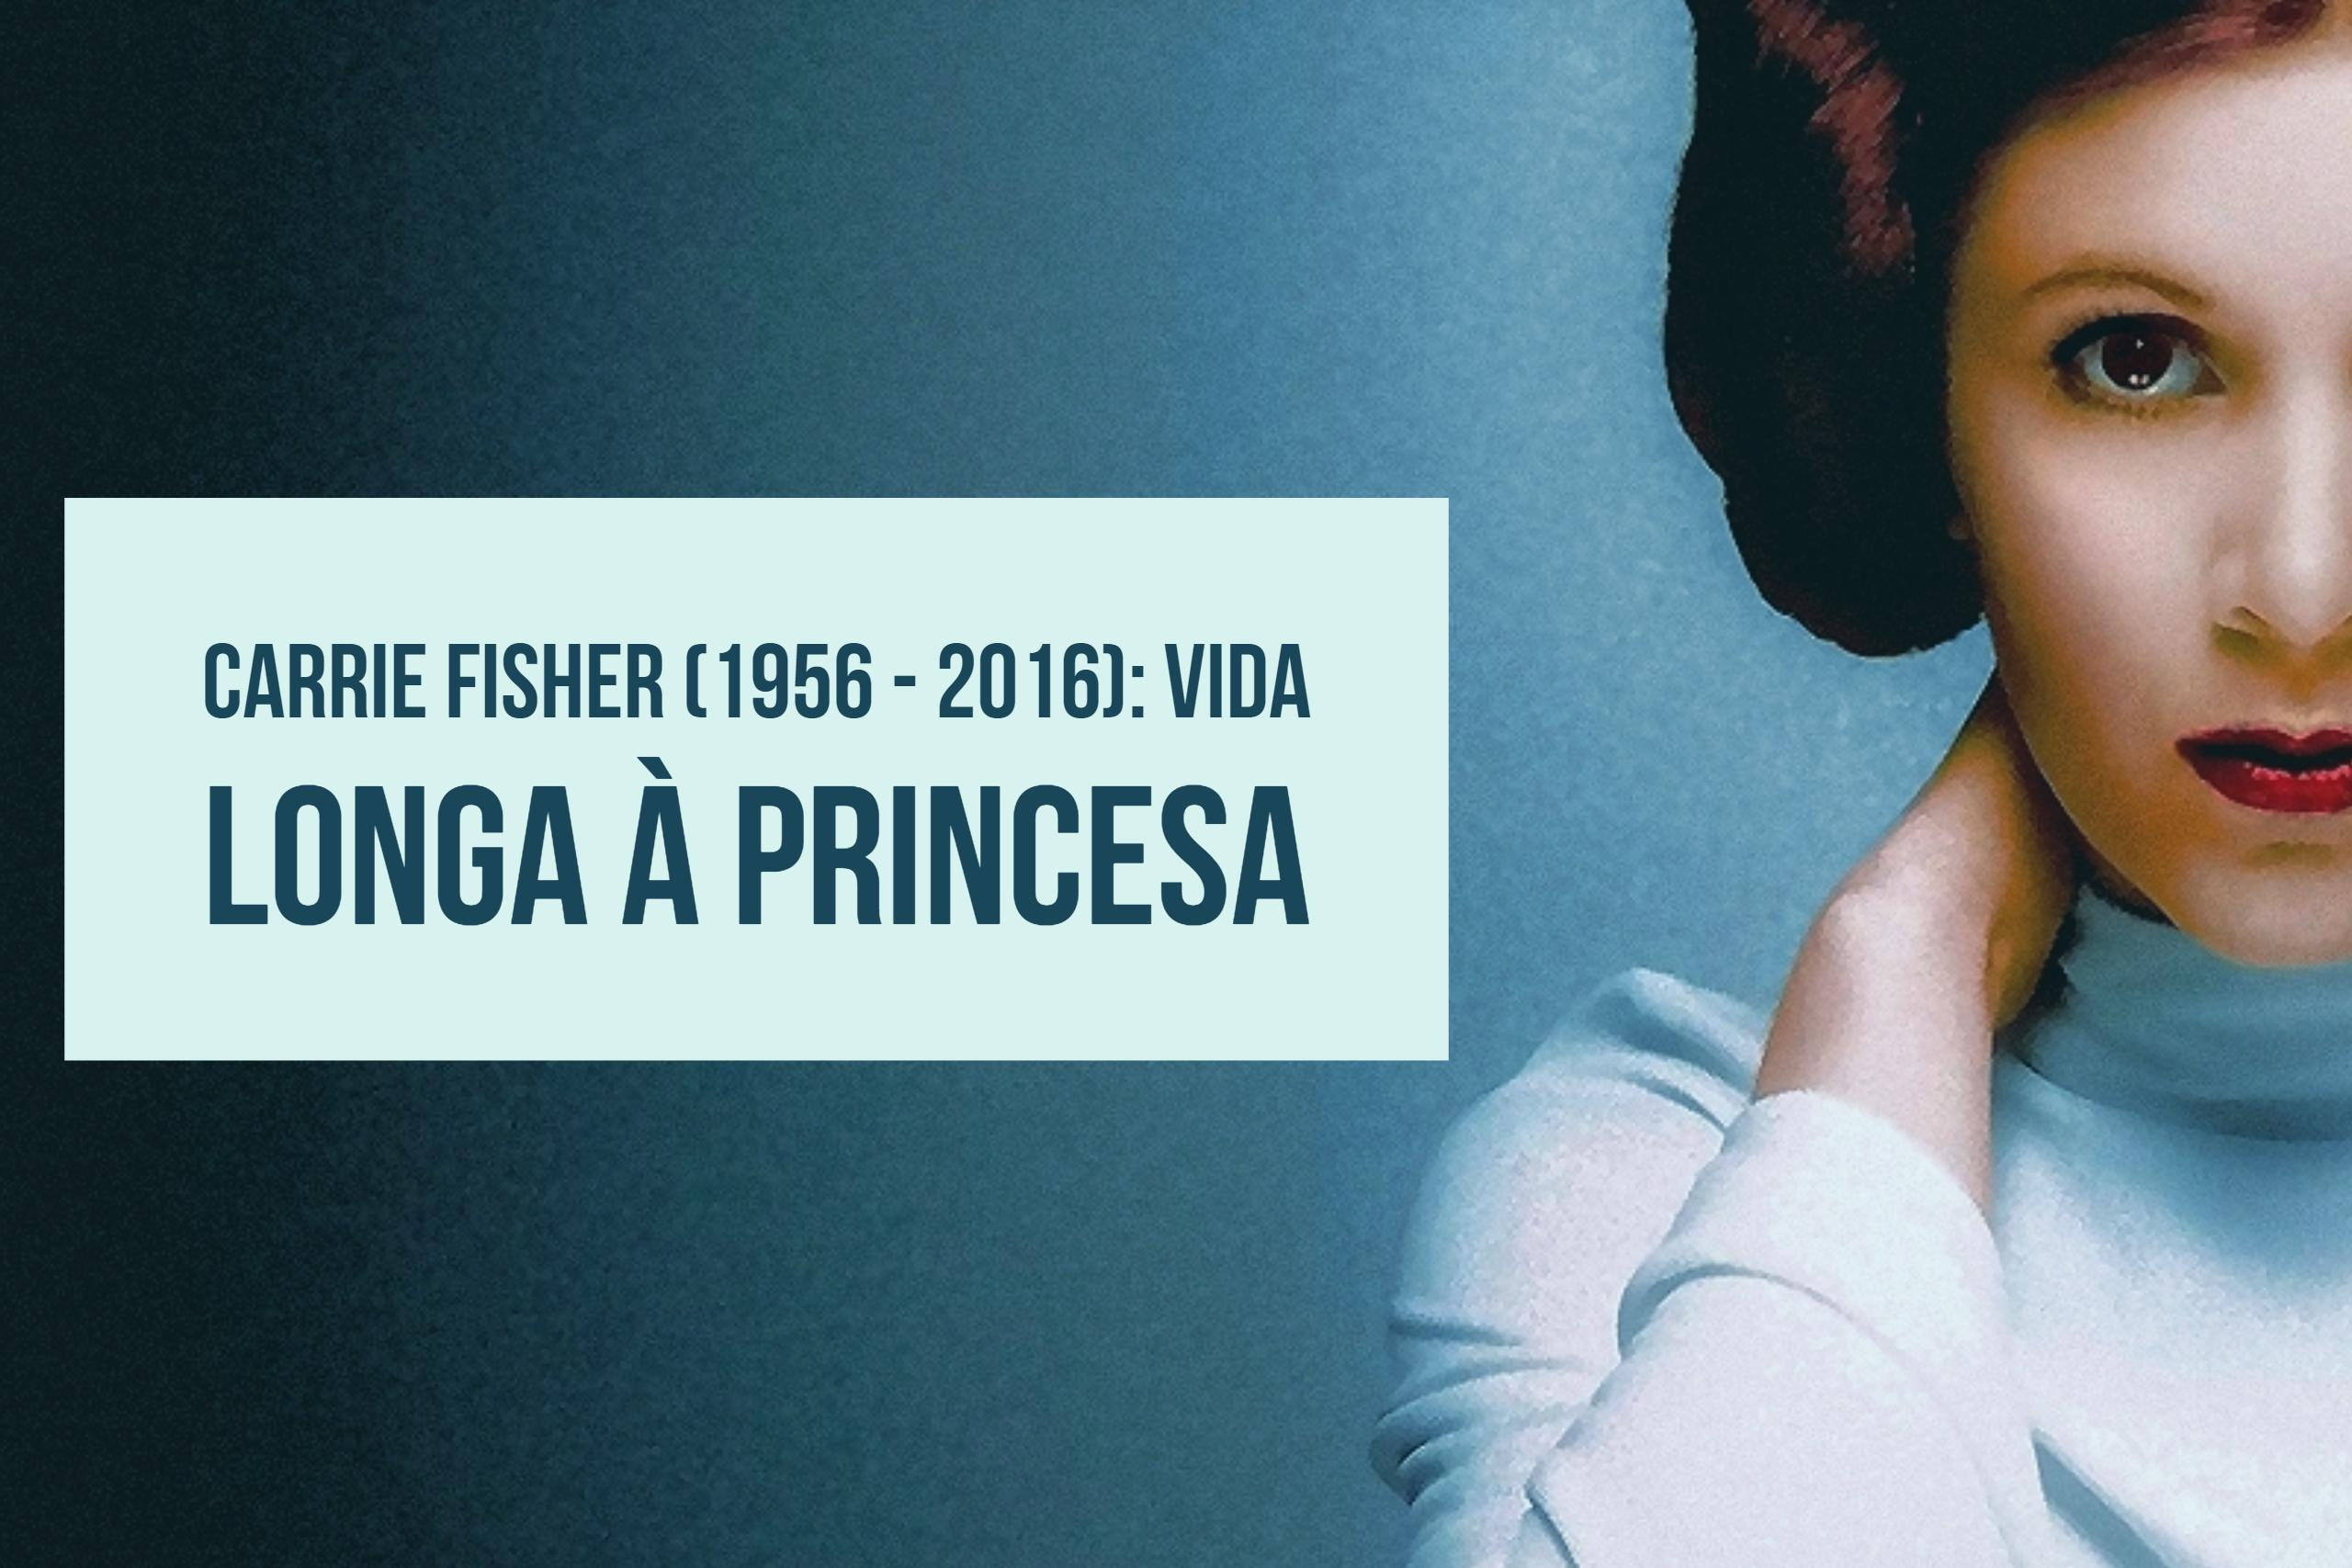 Carrie Fisher (1956 - 2016): vida longa à princesa